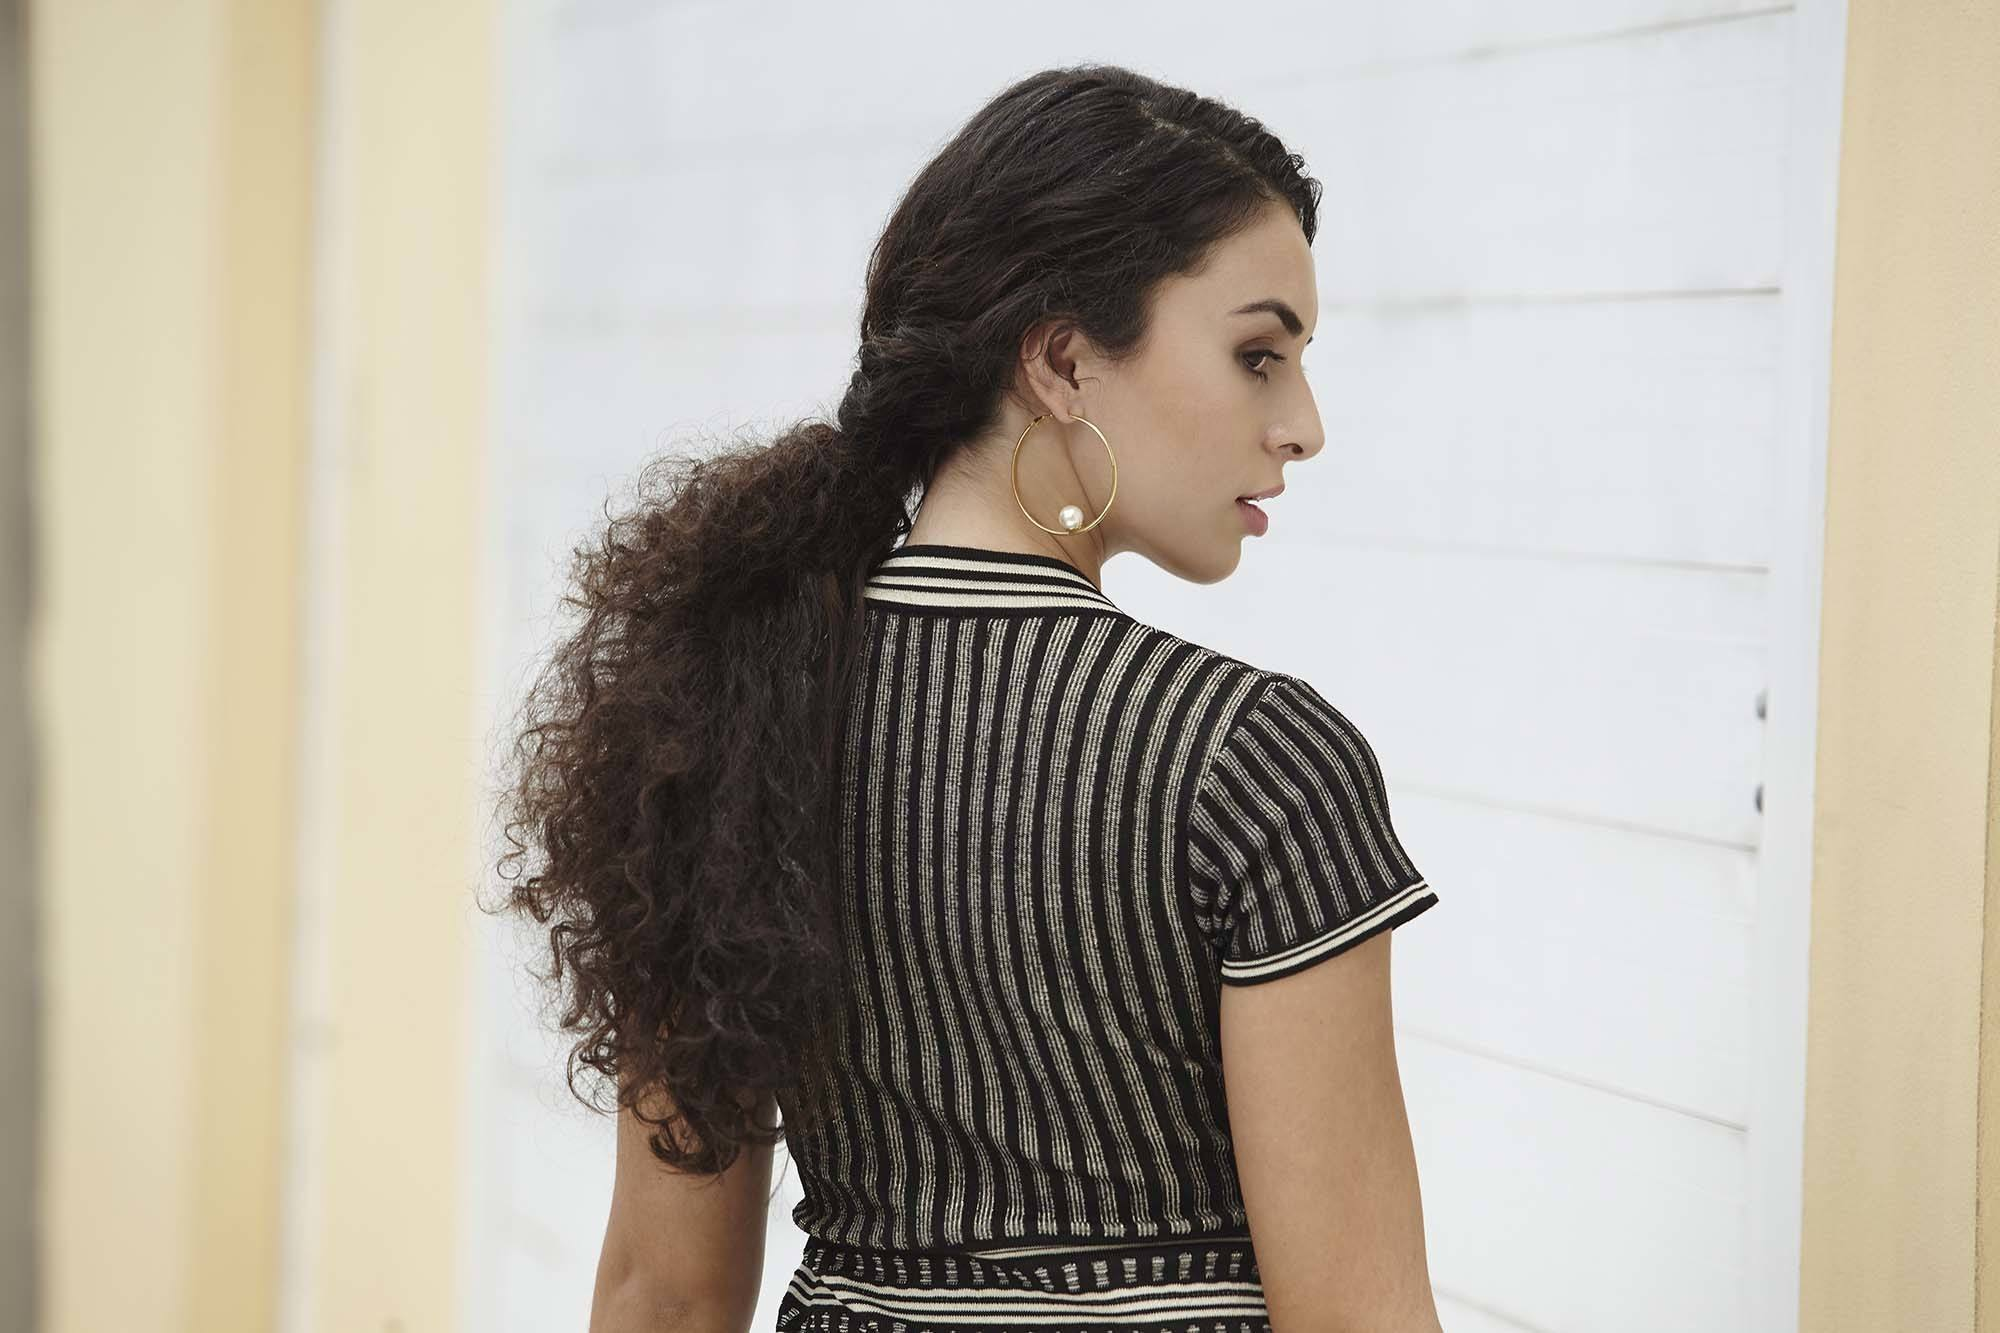 Cool Curly Hairstyles For Long Hair Ideal For Everyday Wear Short Hairstyles Gunalazisus